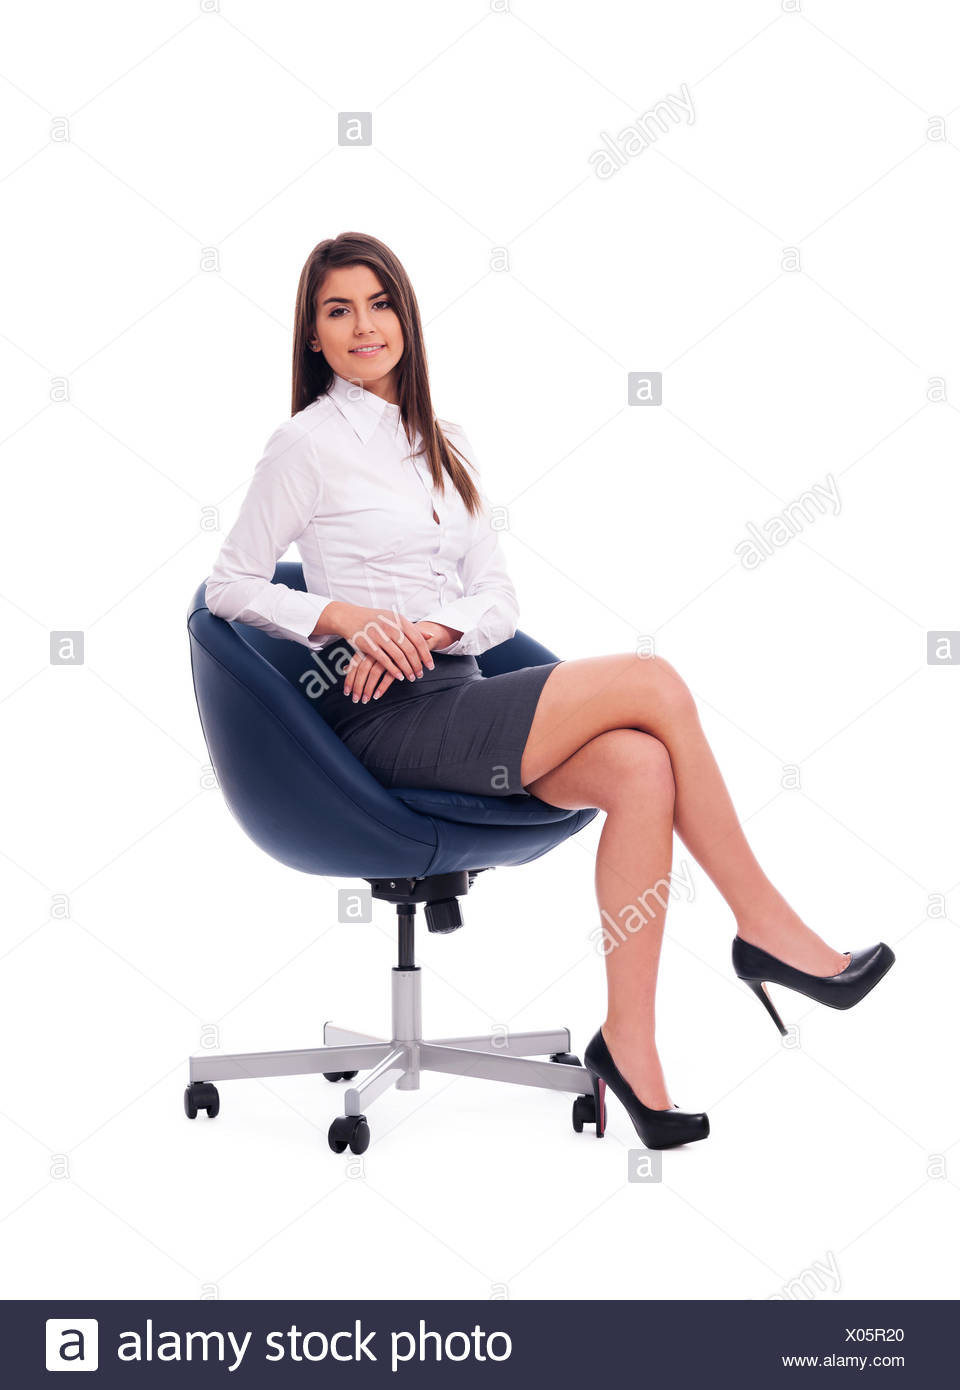 Beautiful businesswoman sitting on a chair, Debica, Poland - Stock Image